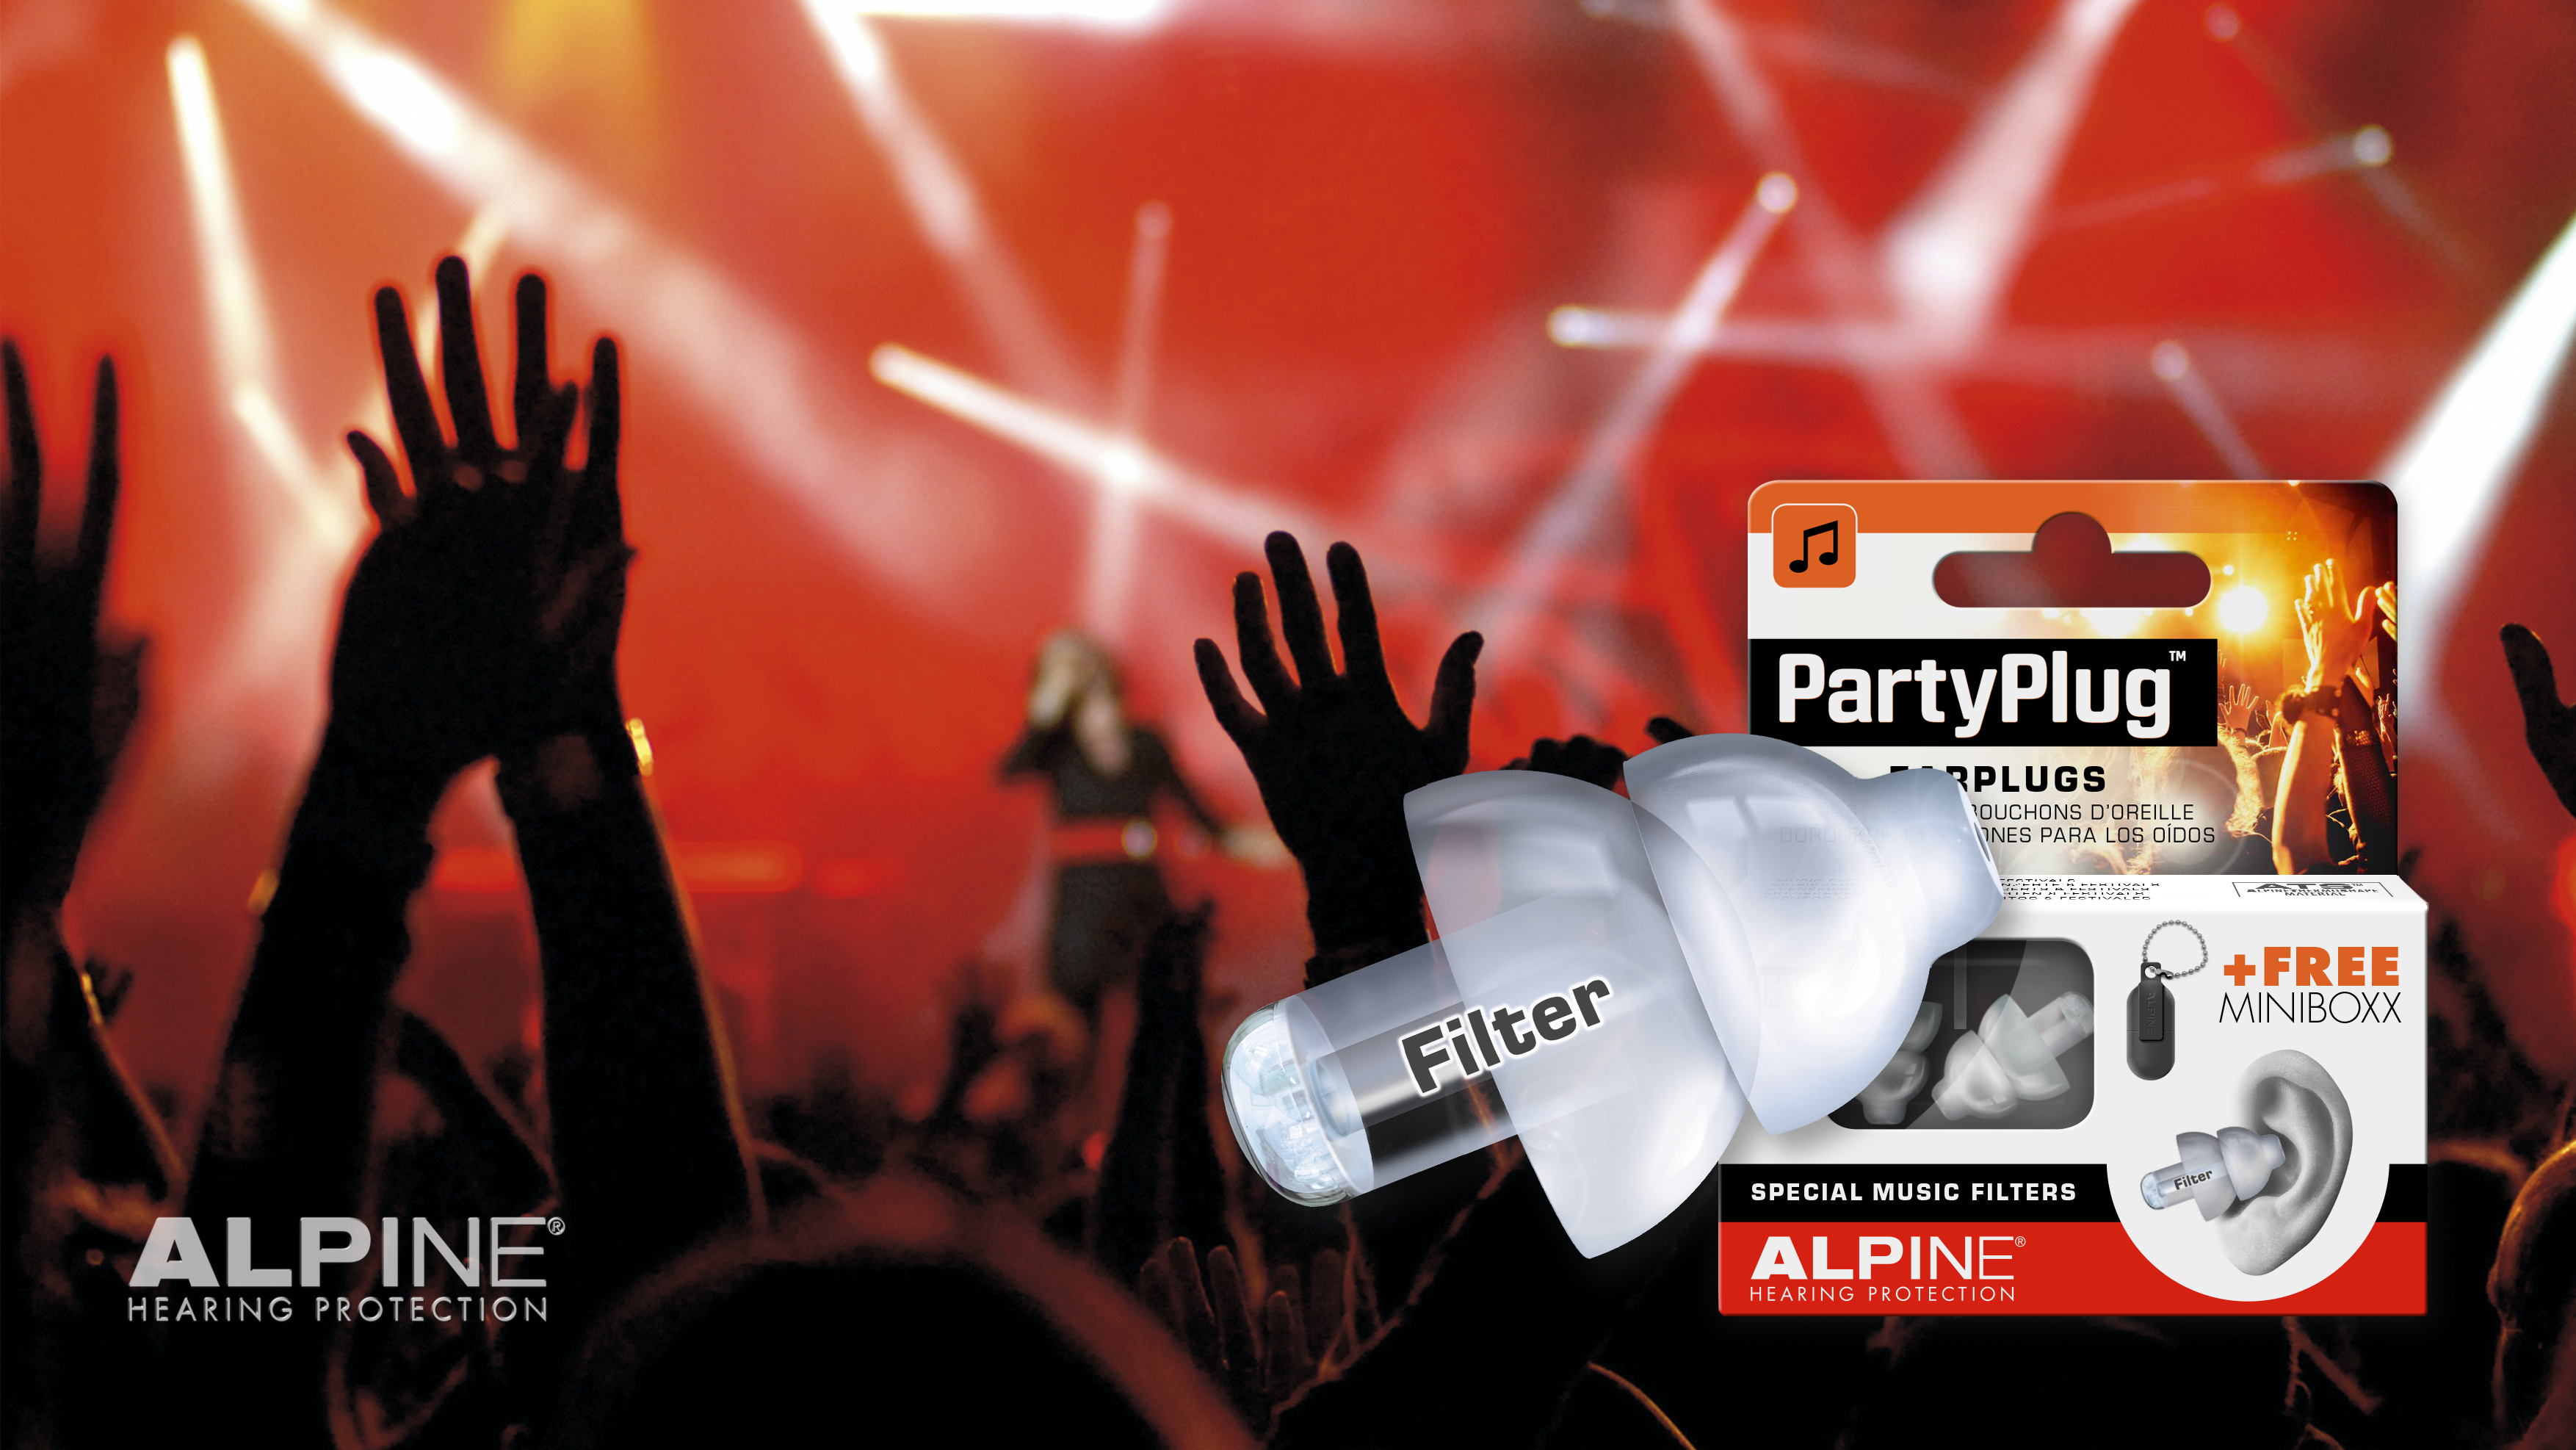 alpine-partyplug-with-picture-hands